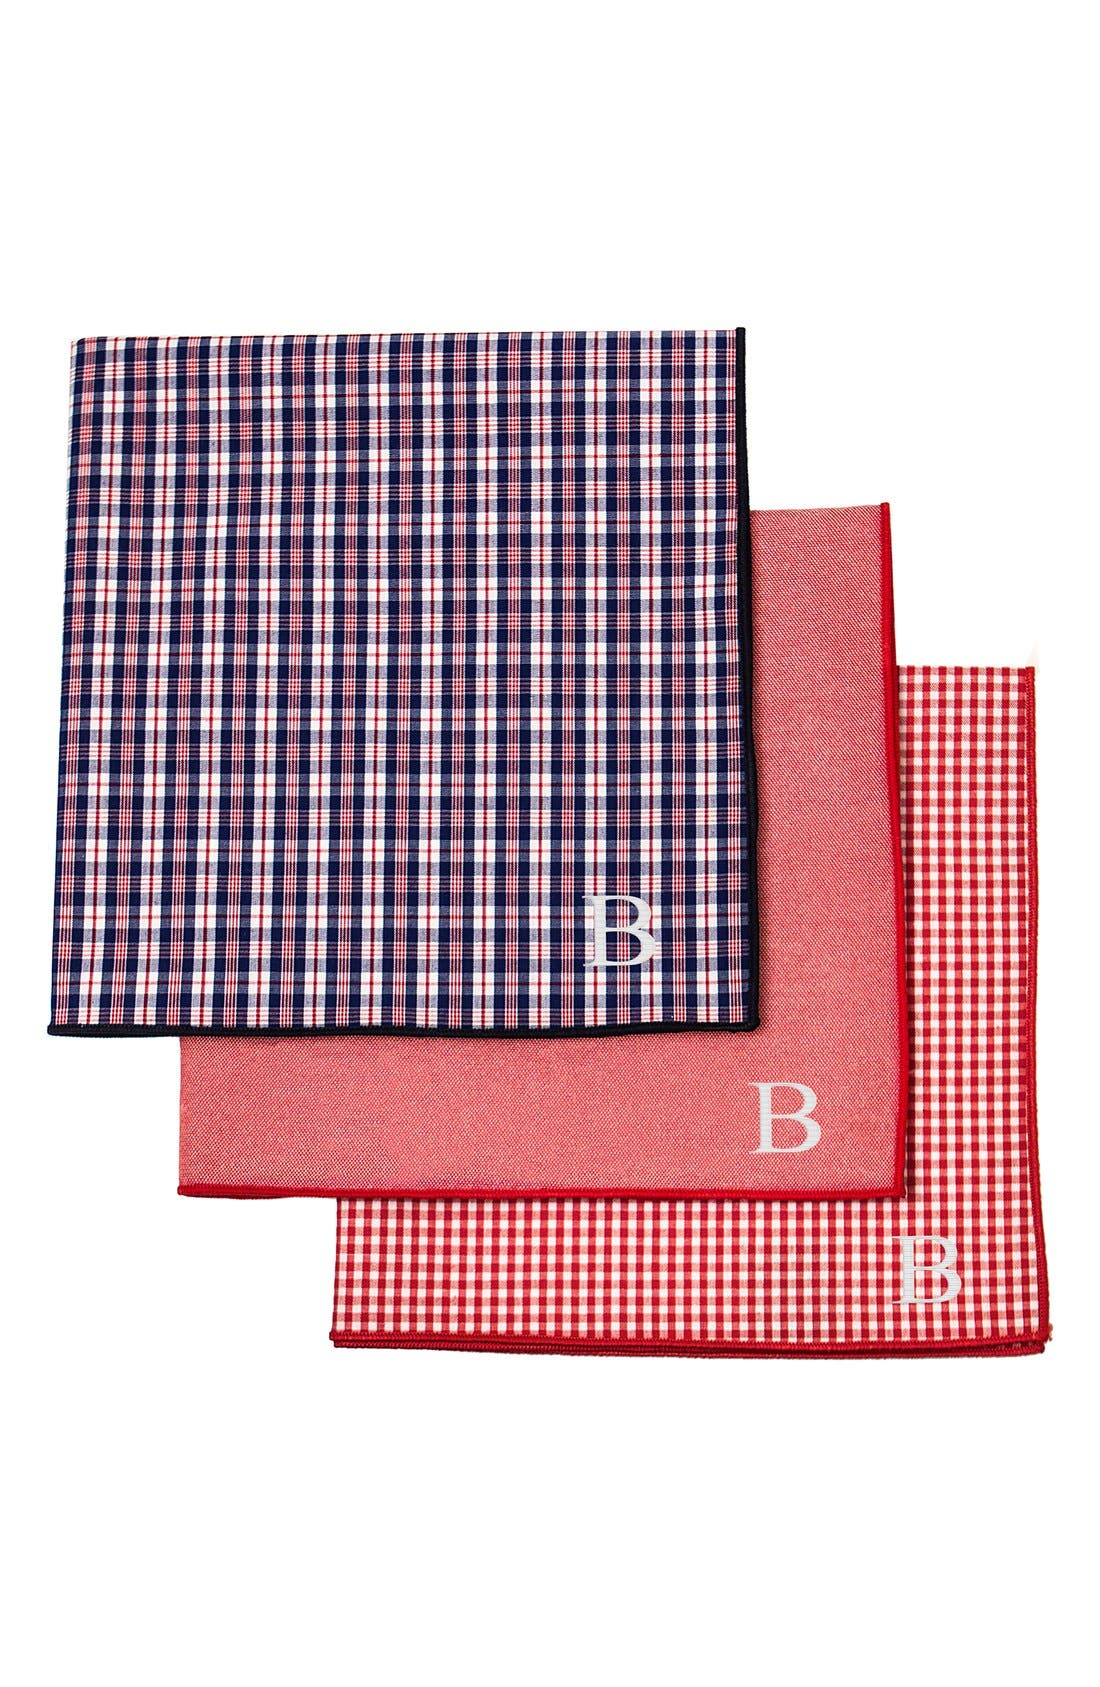 Set of 3 Monogram Pocket Squares,                             Main thumbnail 1, color,                             Red - B